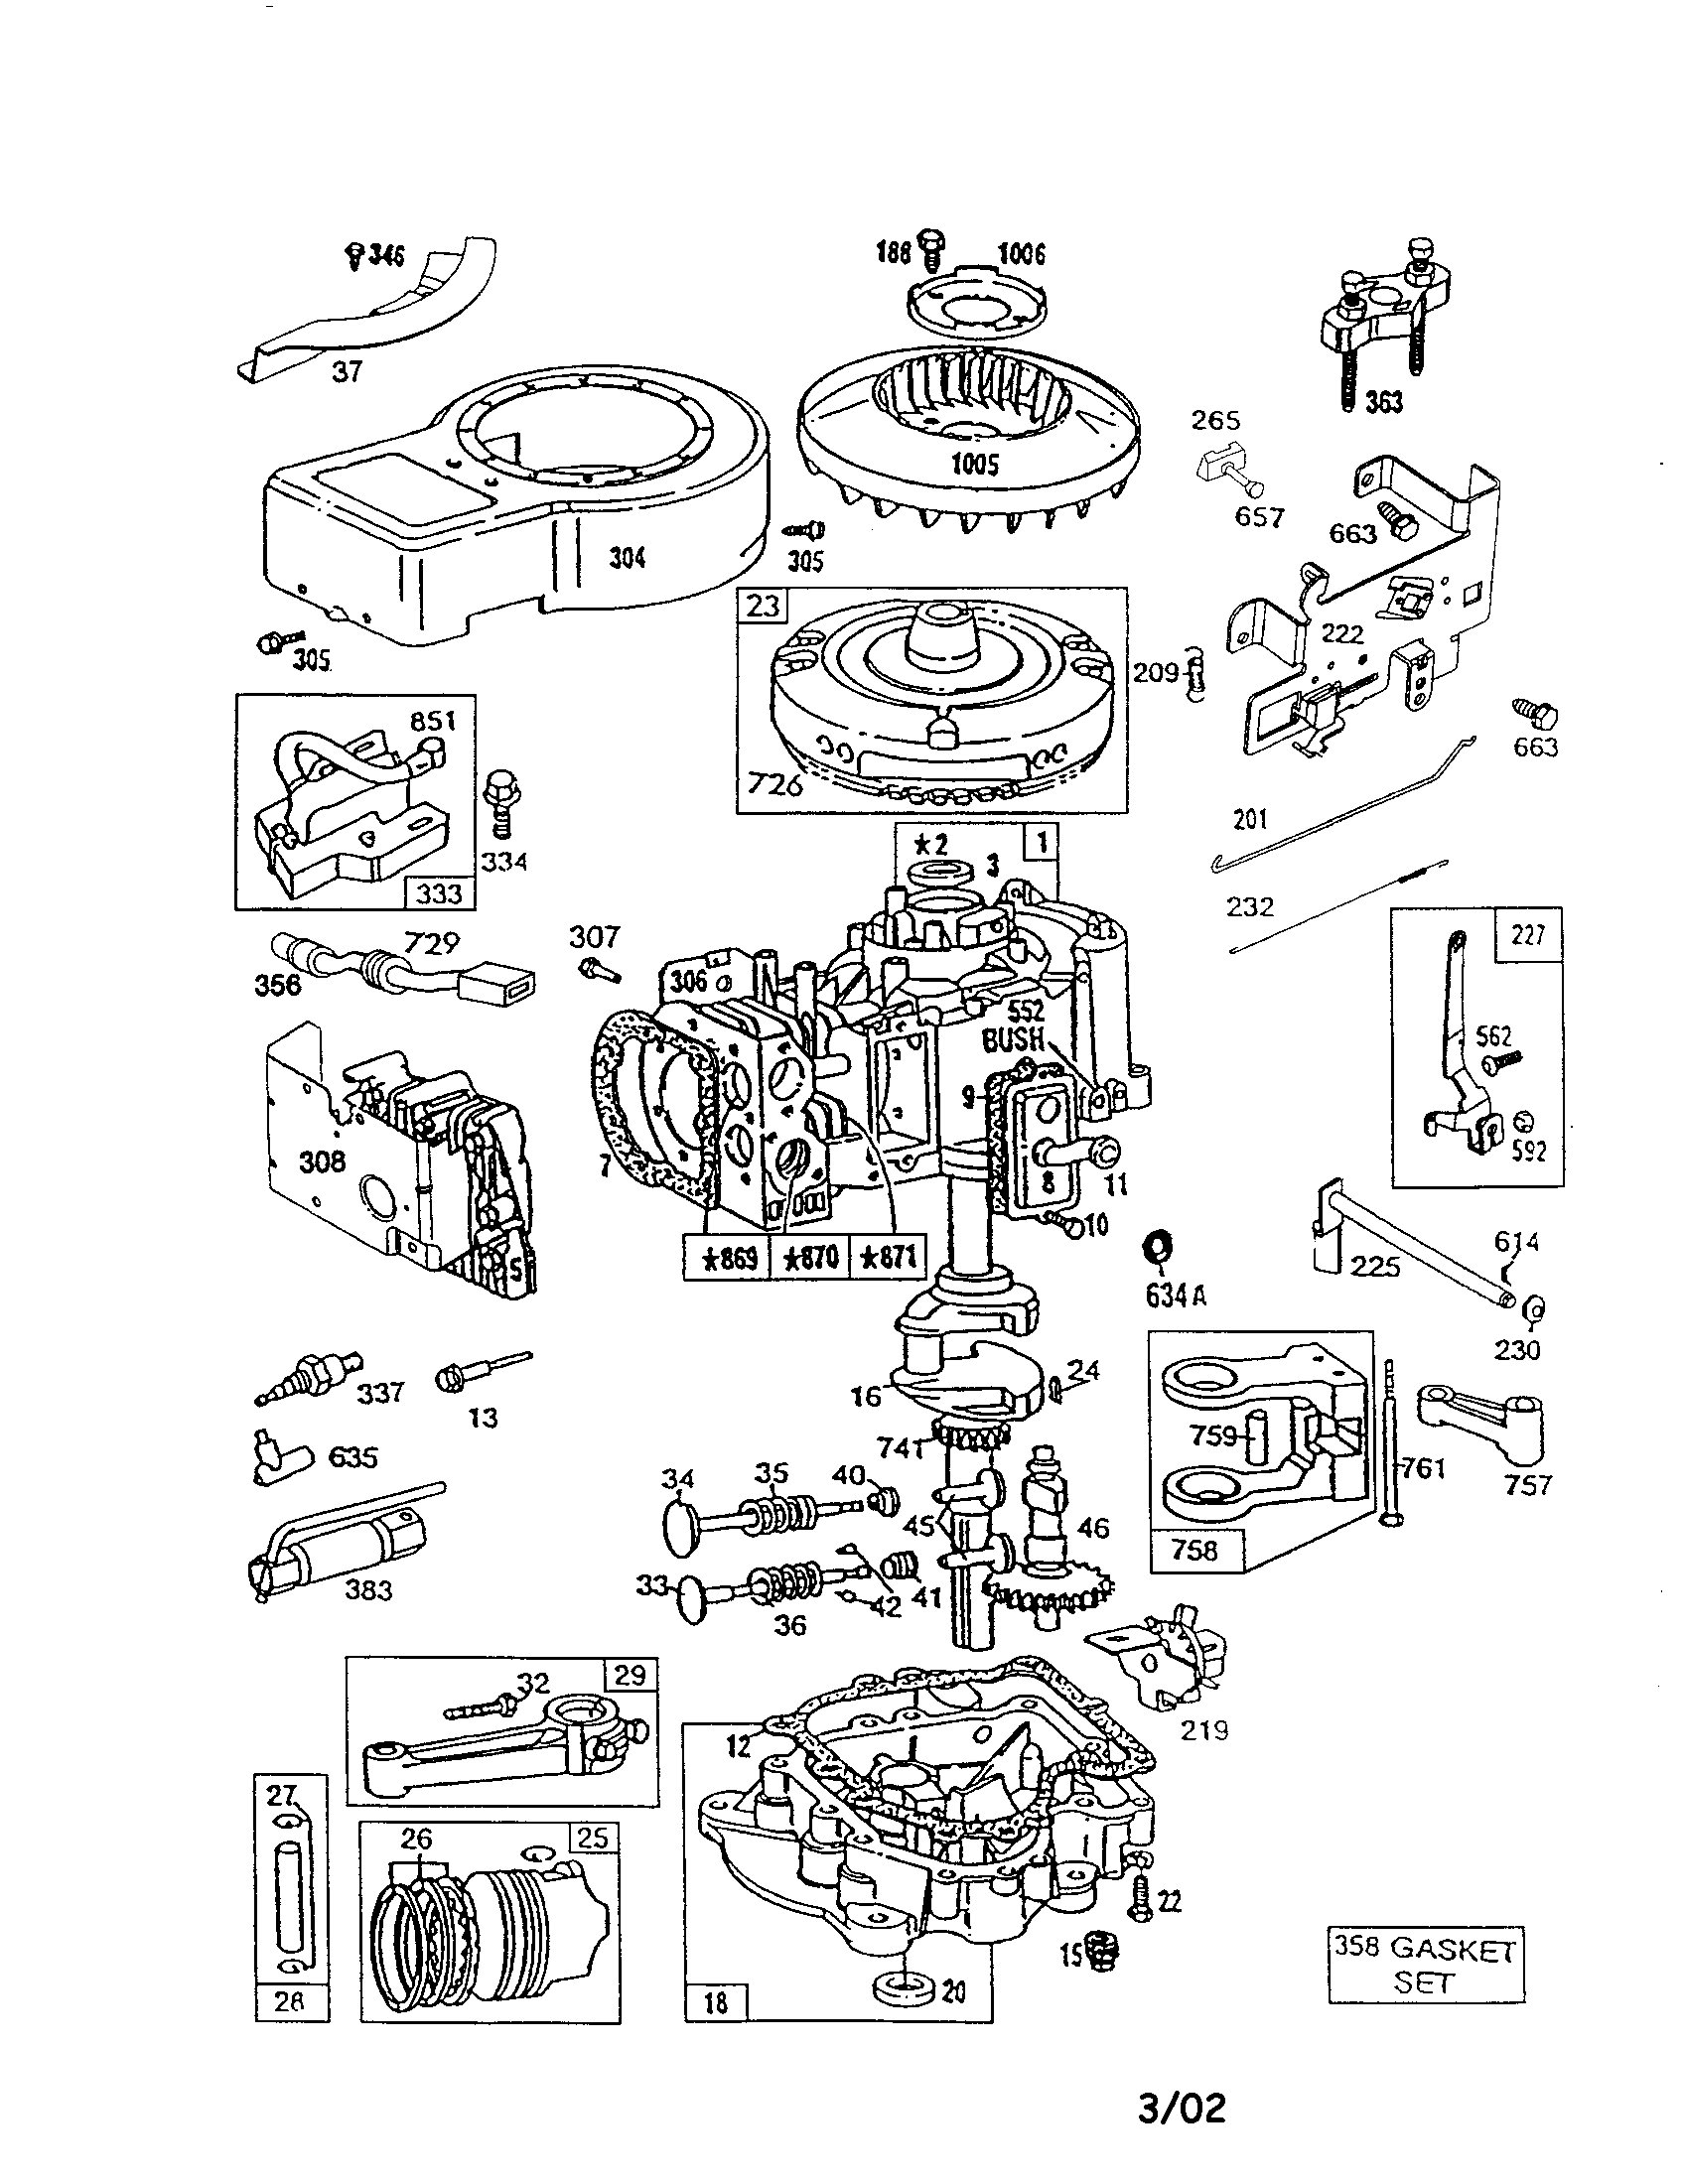 Diagram: Briggs And Stratton Parts Diagram pertaining to Briggs And Stratton 550Ex Parts Diagram